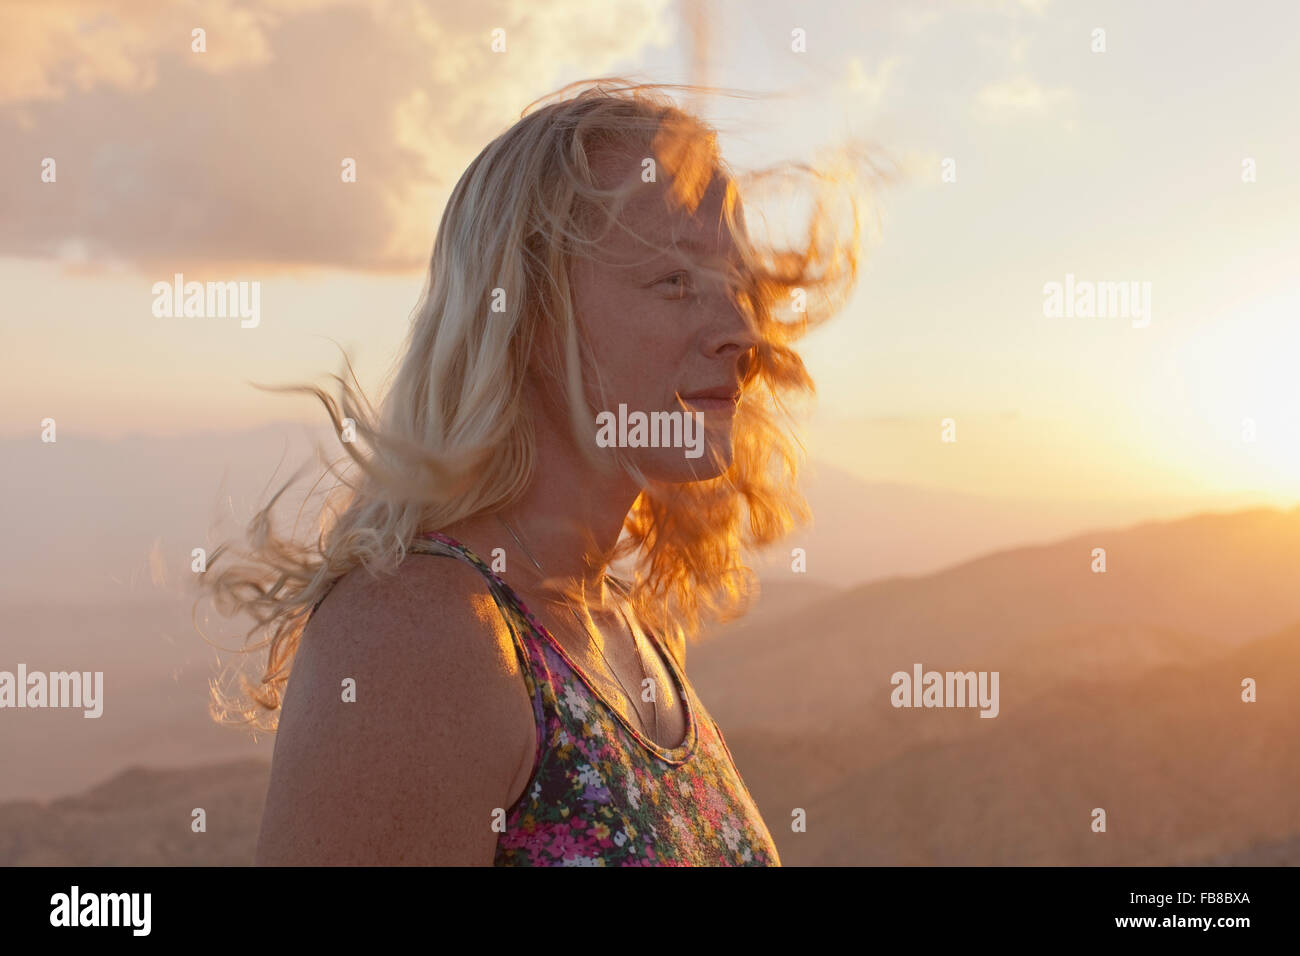 USA, California, Joshua Tree National Park, Female tourist relaxing in mountain landscape at sunset - Stock Image